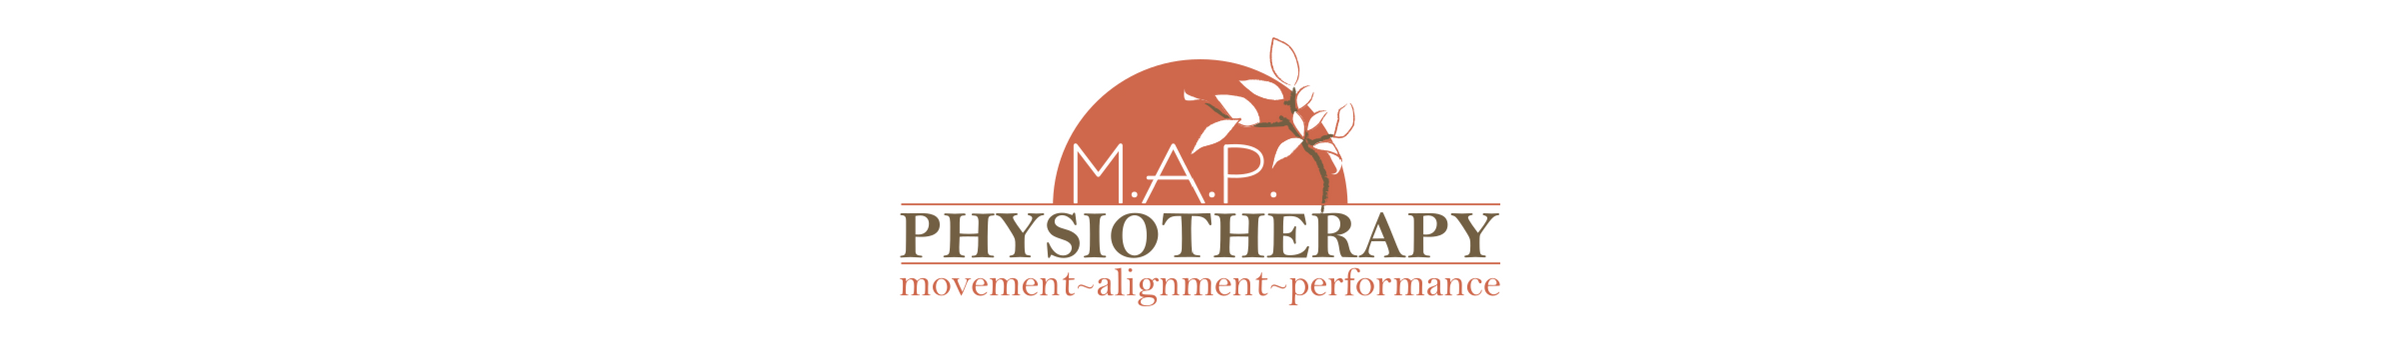 M.A.P. Physiotherapy header image